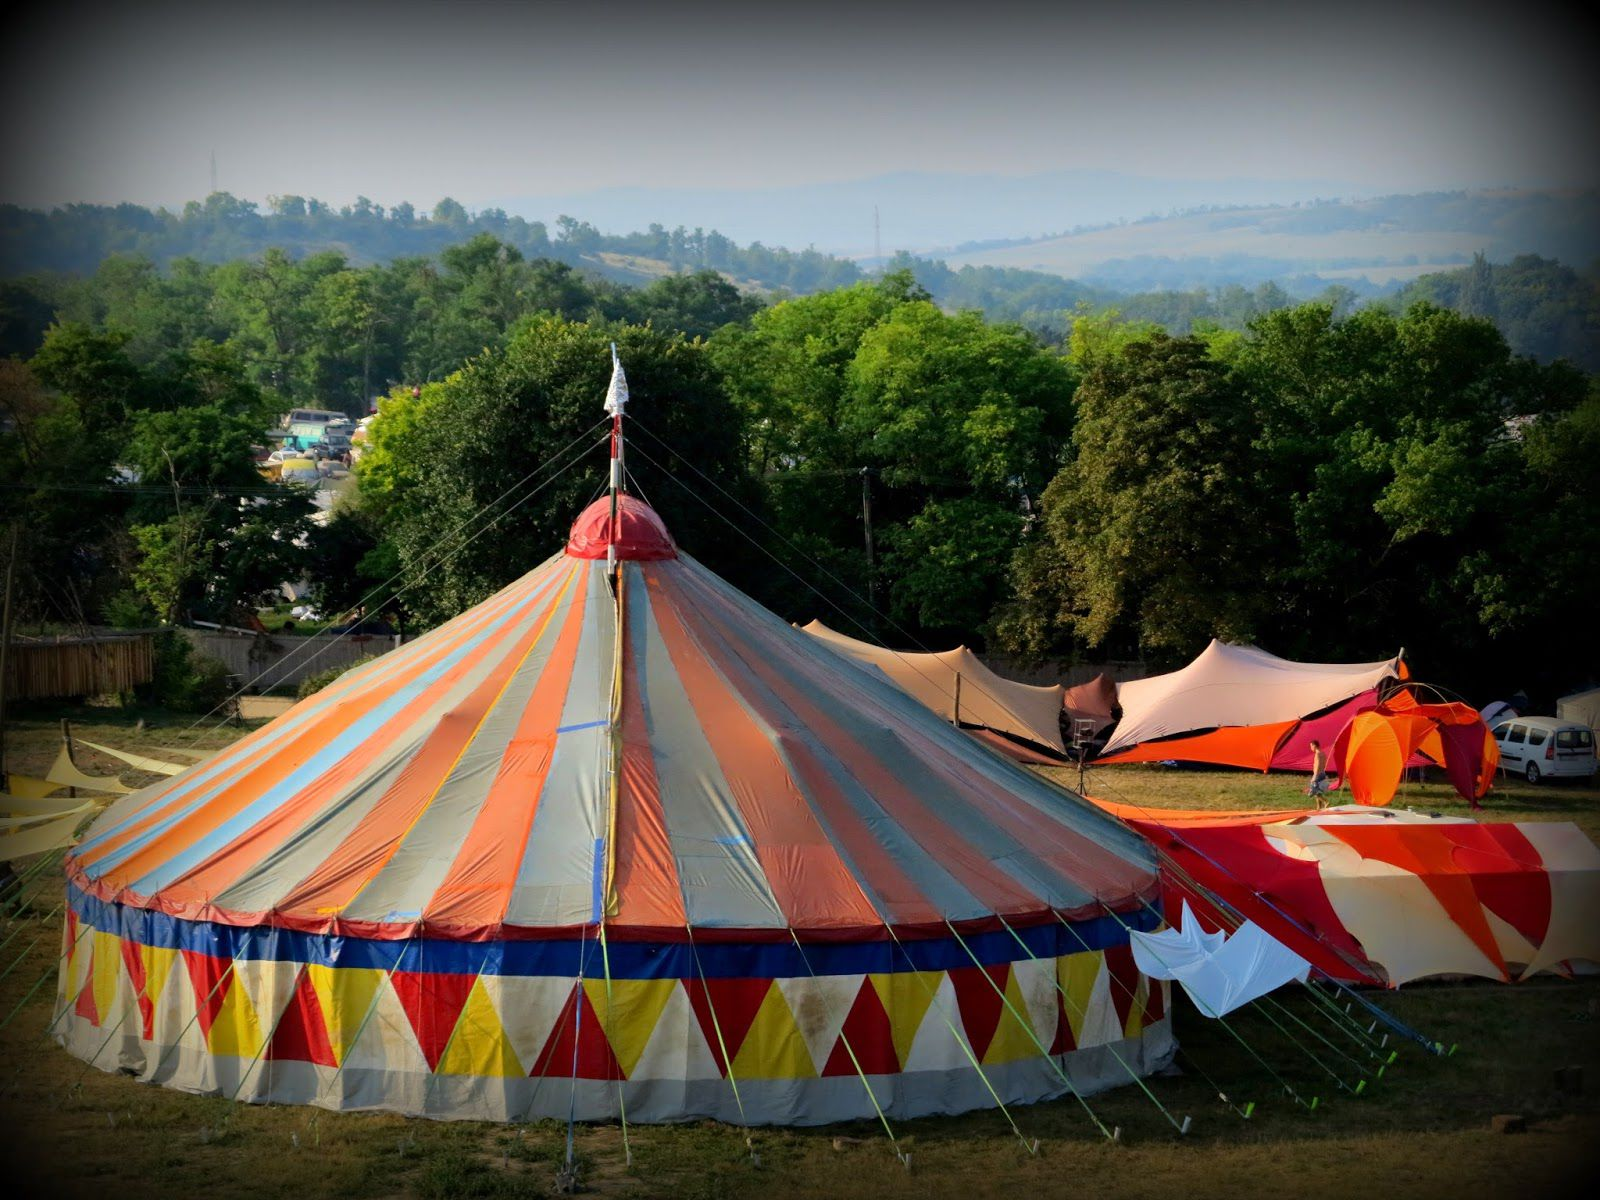 ... tent the weekly programme is carried out by our team as well trainings and workshops during the day perfromances in the evening and parties at night. & Circus Tent | Firebirds